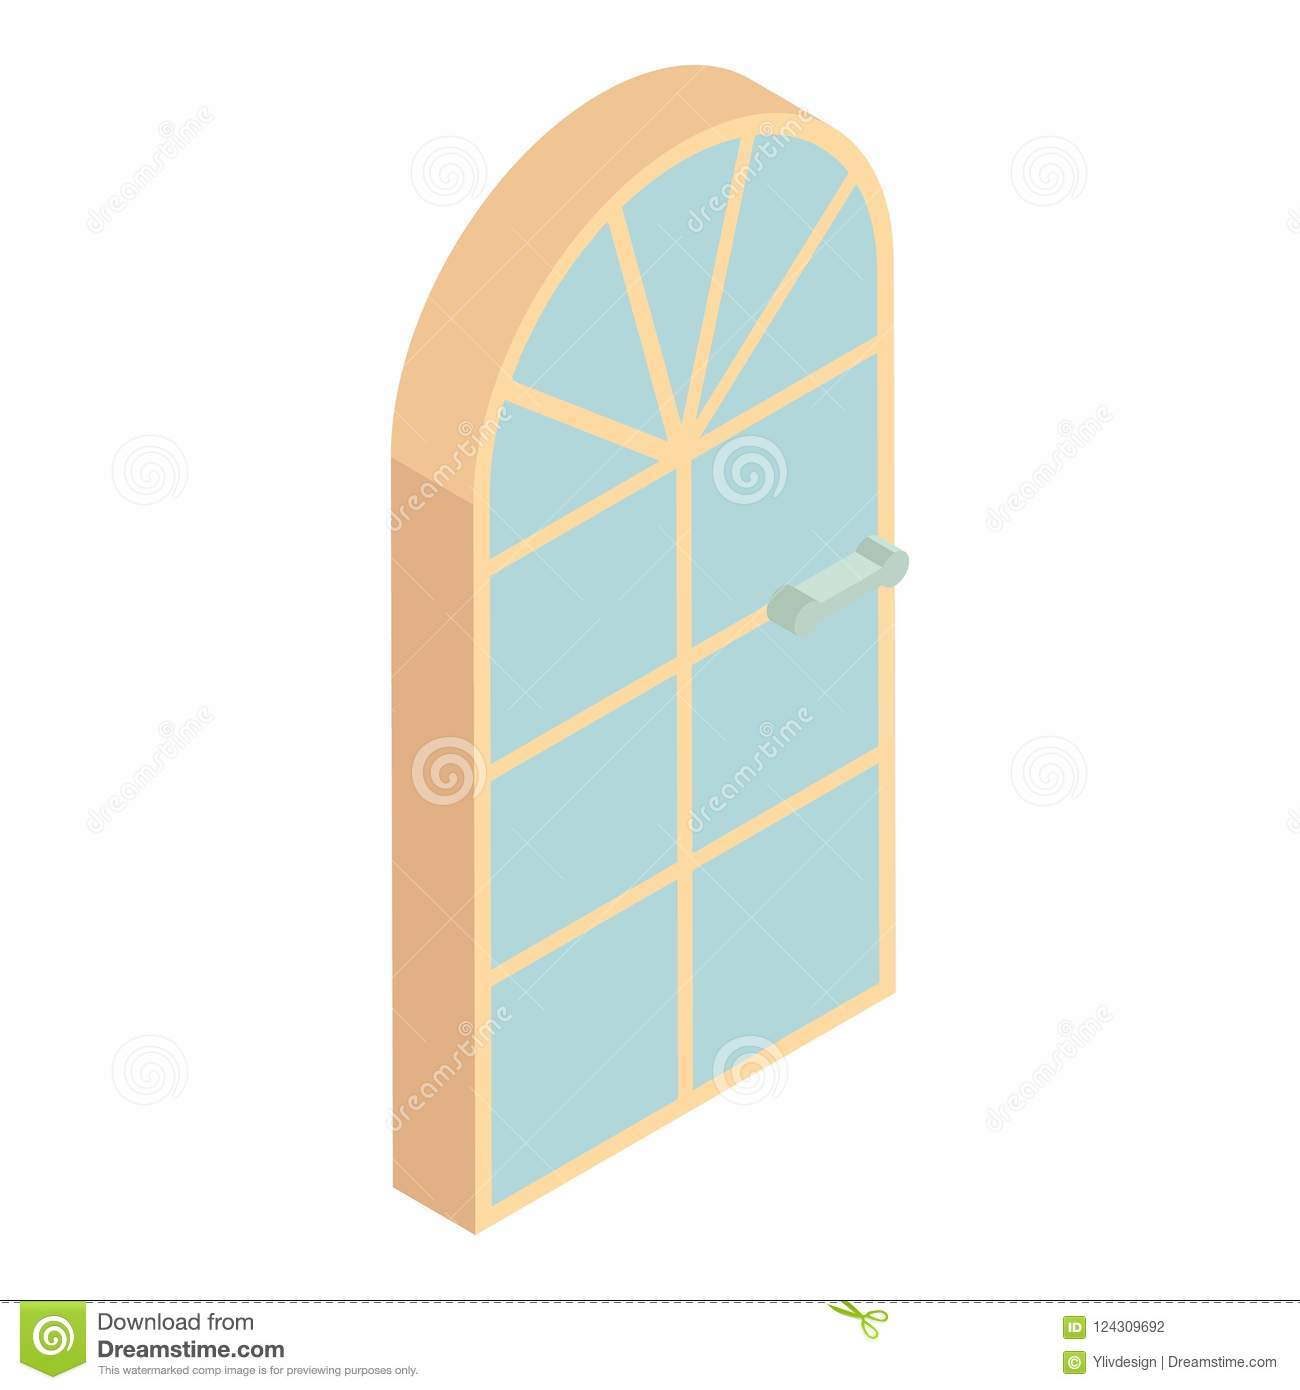 hight resolution of arched front door icon cartoon style